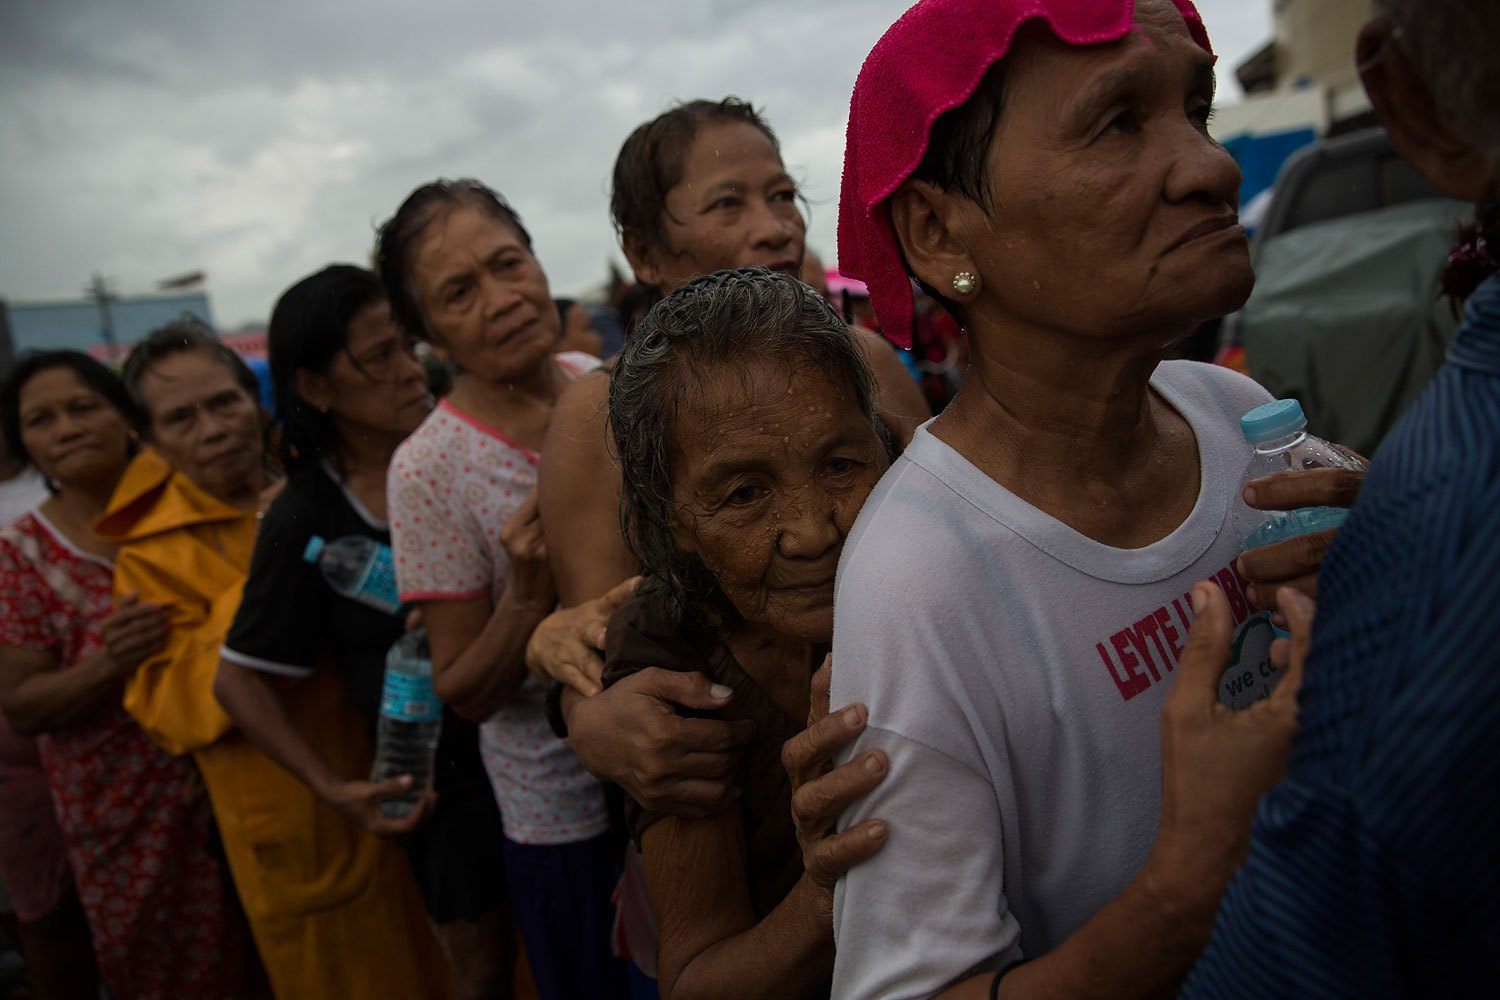 Displaced people effected by Haiyan Typhoon queue in the rain for the first aid delivery at a displacement camp in Tacloban, Philippines on November 14, 2013.